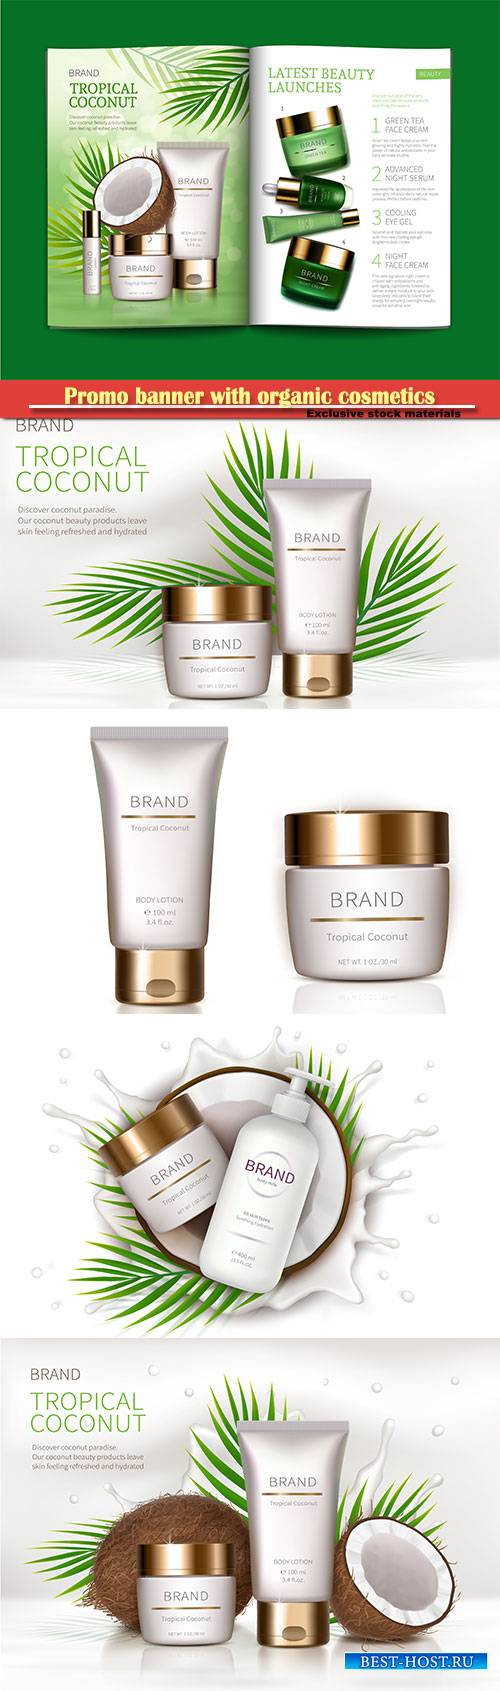 Mock up promo banner with organic cosmetics